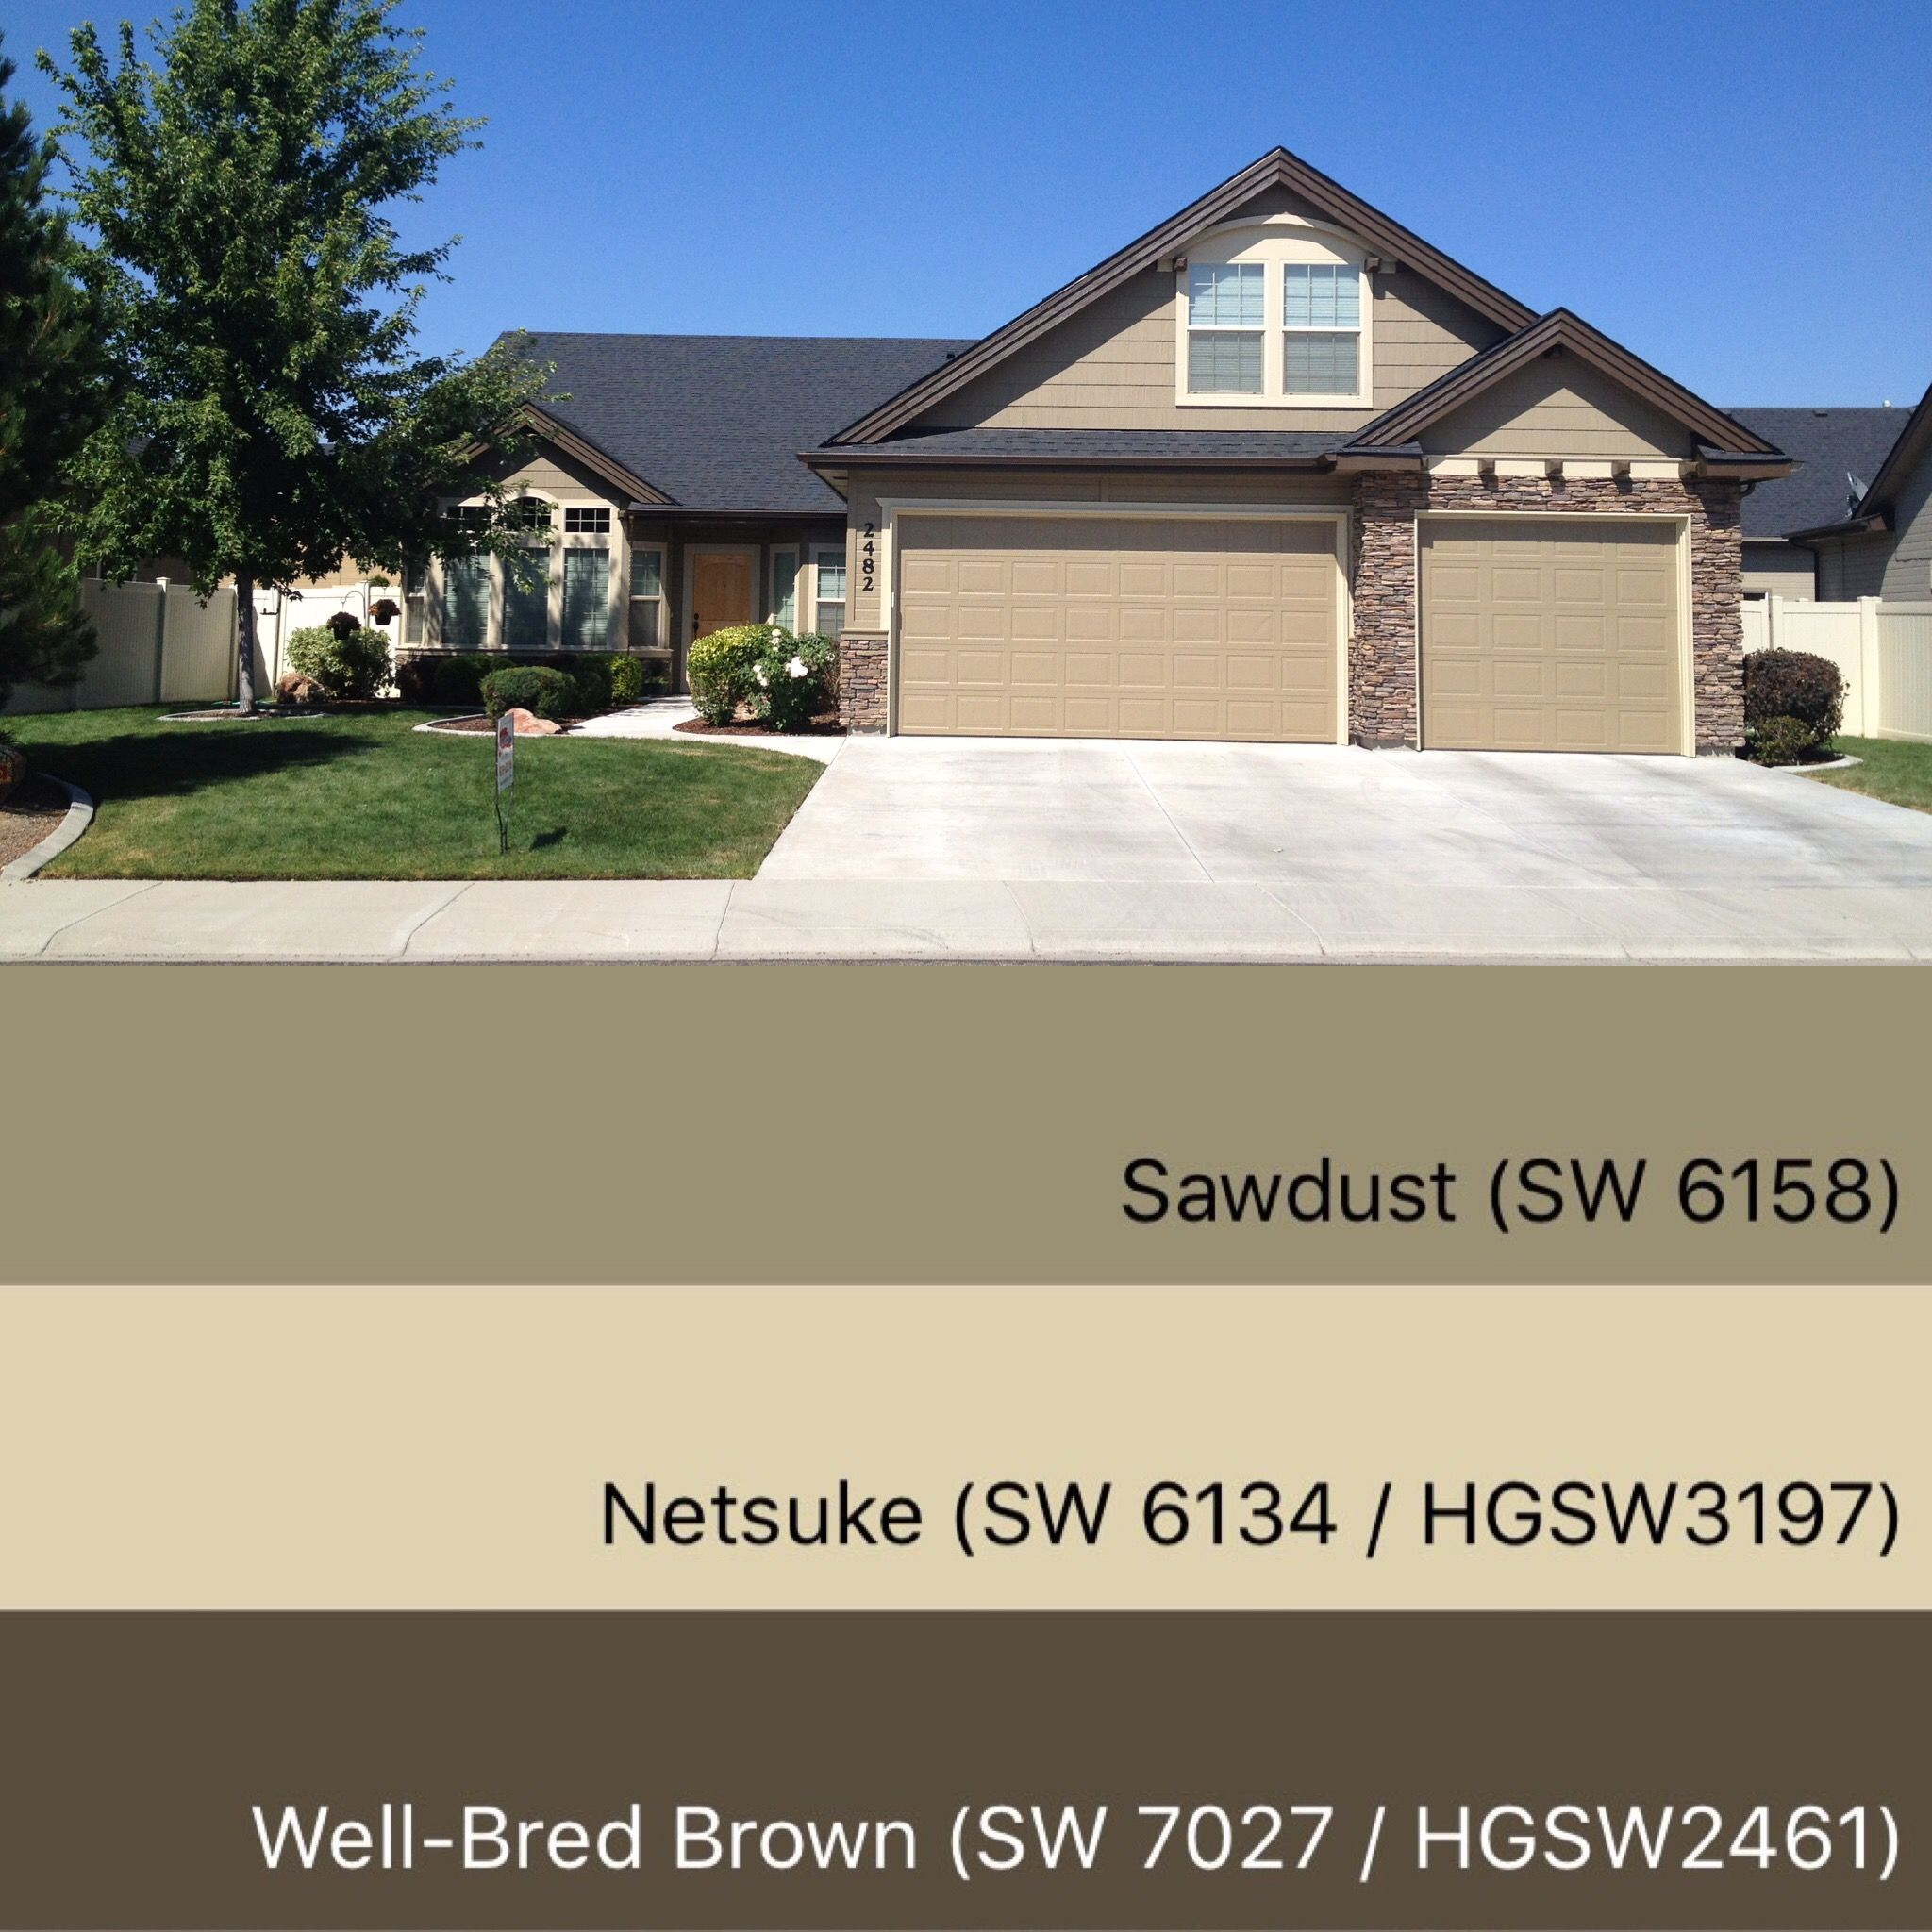 Image Result For Sherwin Williams Well Bred Brown House Paint Exterior Exterior House Colors Outdoor House Colors